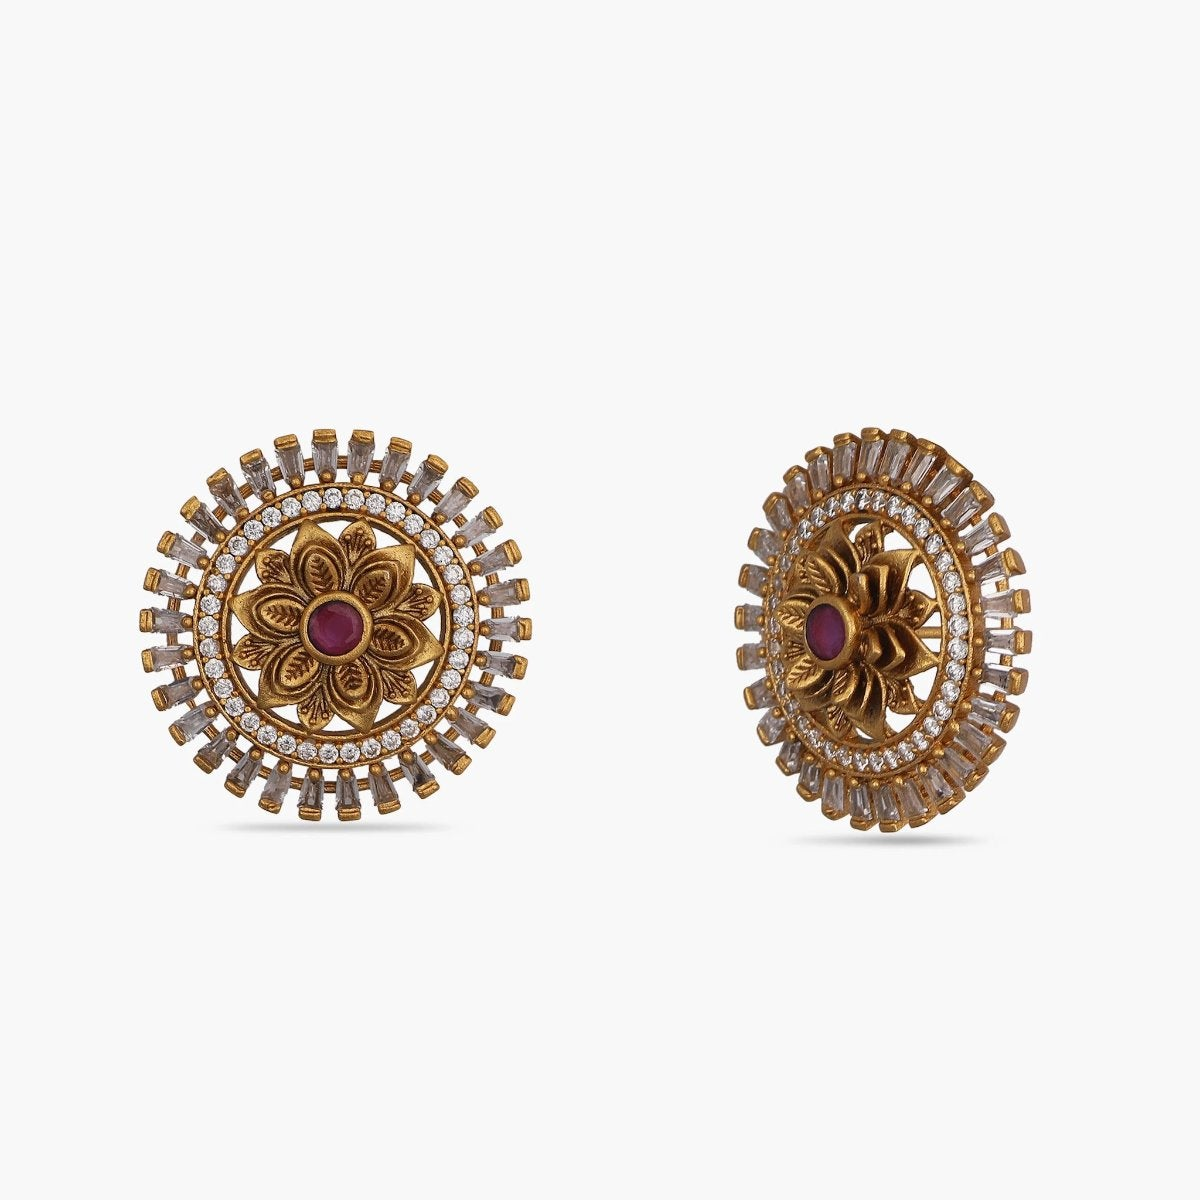 Mesha Nakshatra CZ Earrings